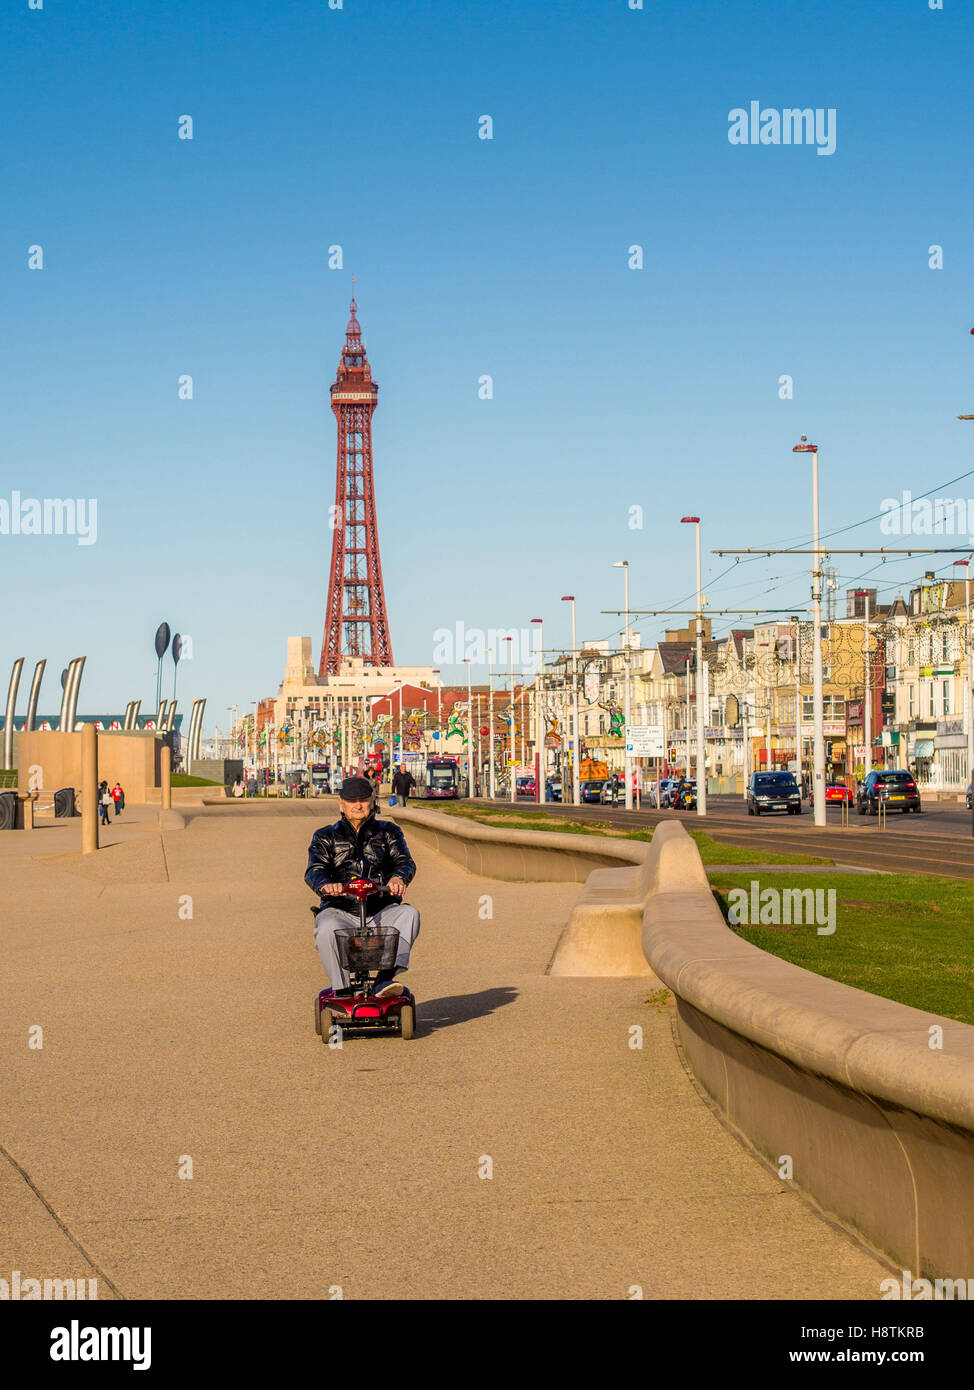 Old man riding electric mobility scooter along Blackpool Promenade with Blackpool Tower in background, Lancashire, - Stock Image